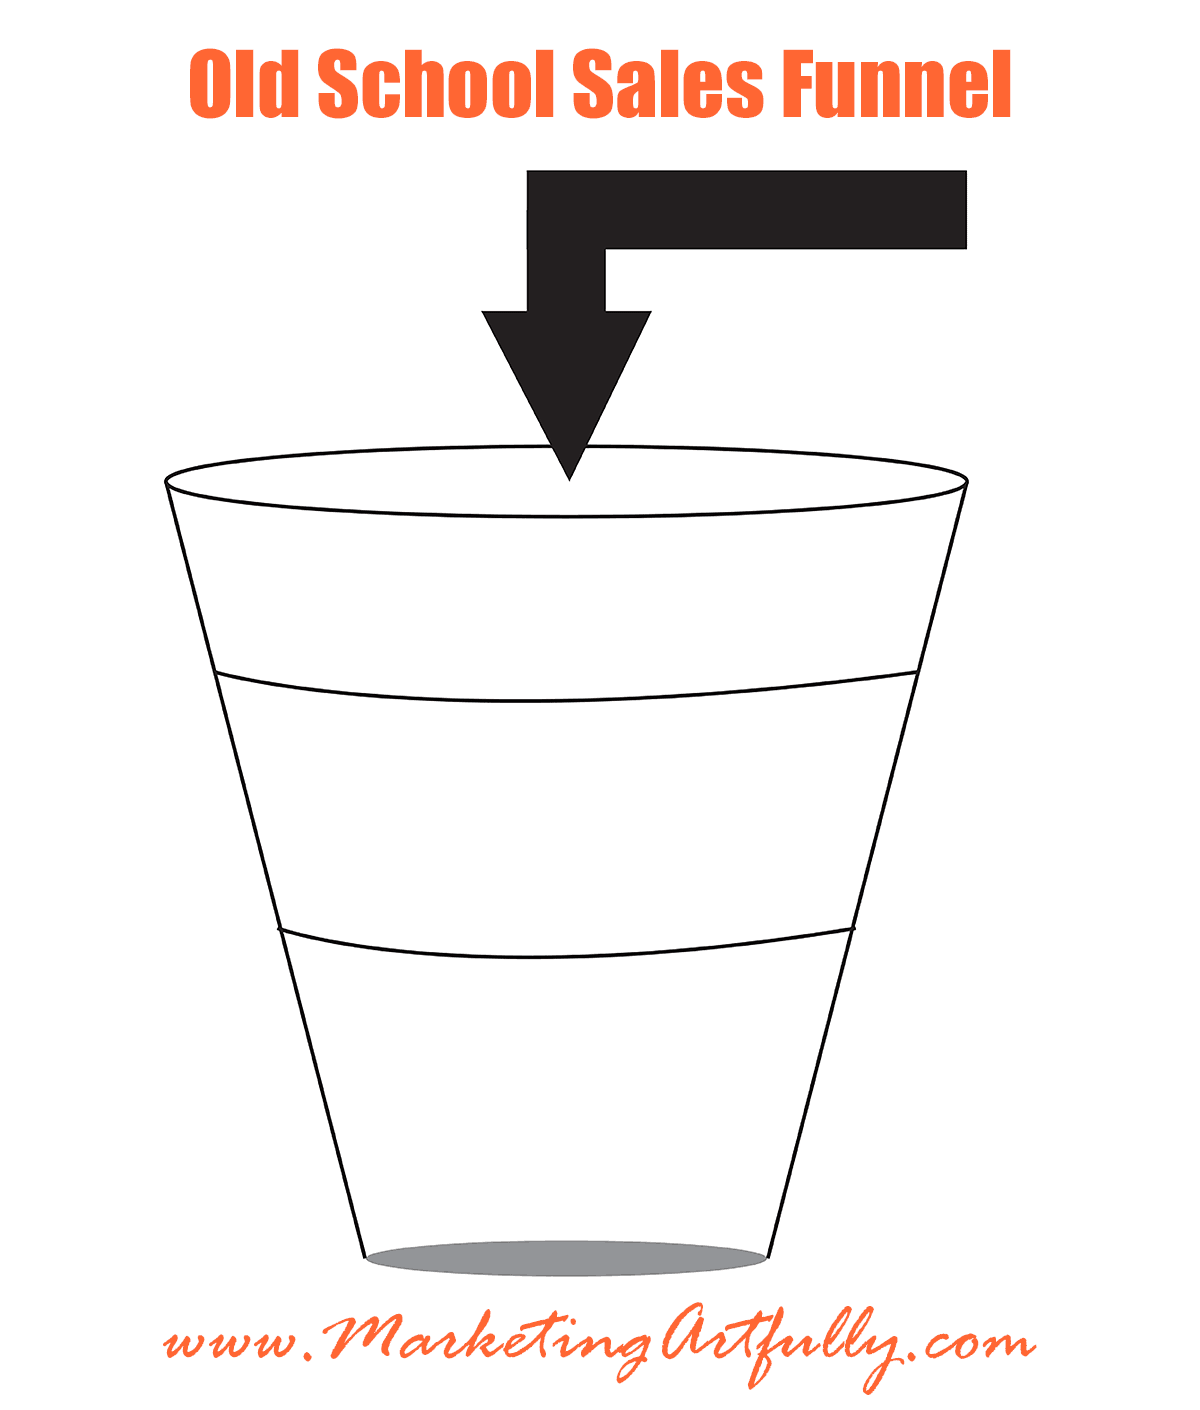 The Old School Sales Funnel